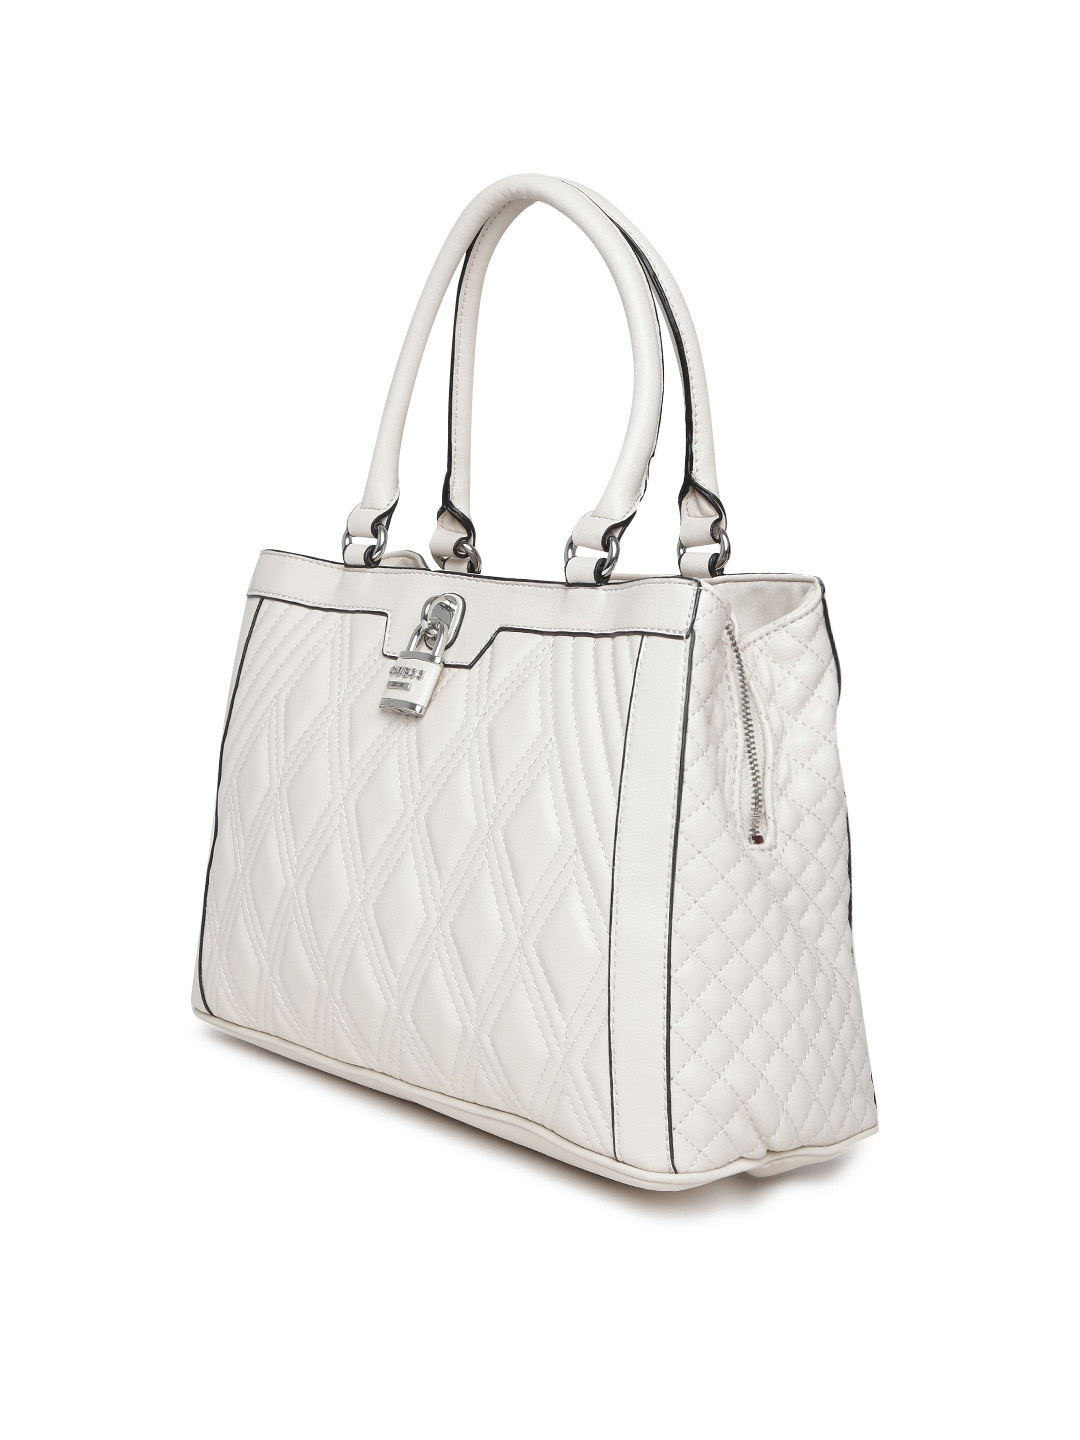 ... Buy GUESS Off White Quilted Handbag Handbags for Women 1591138 025266f38726c